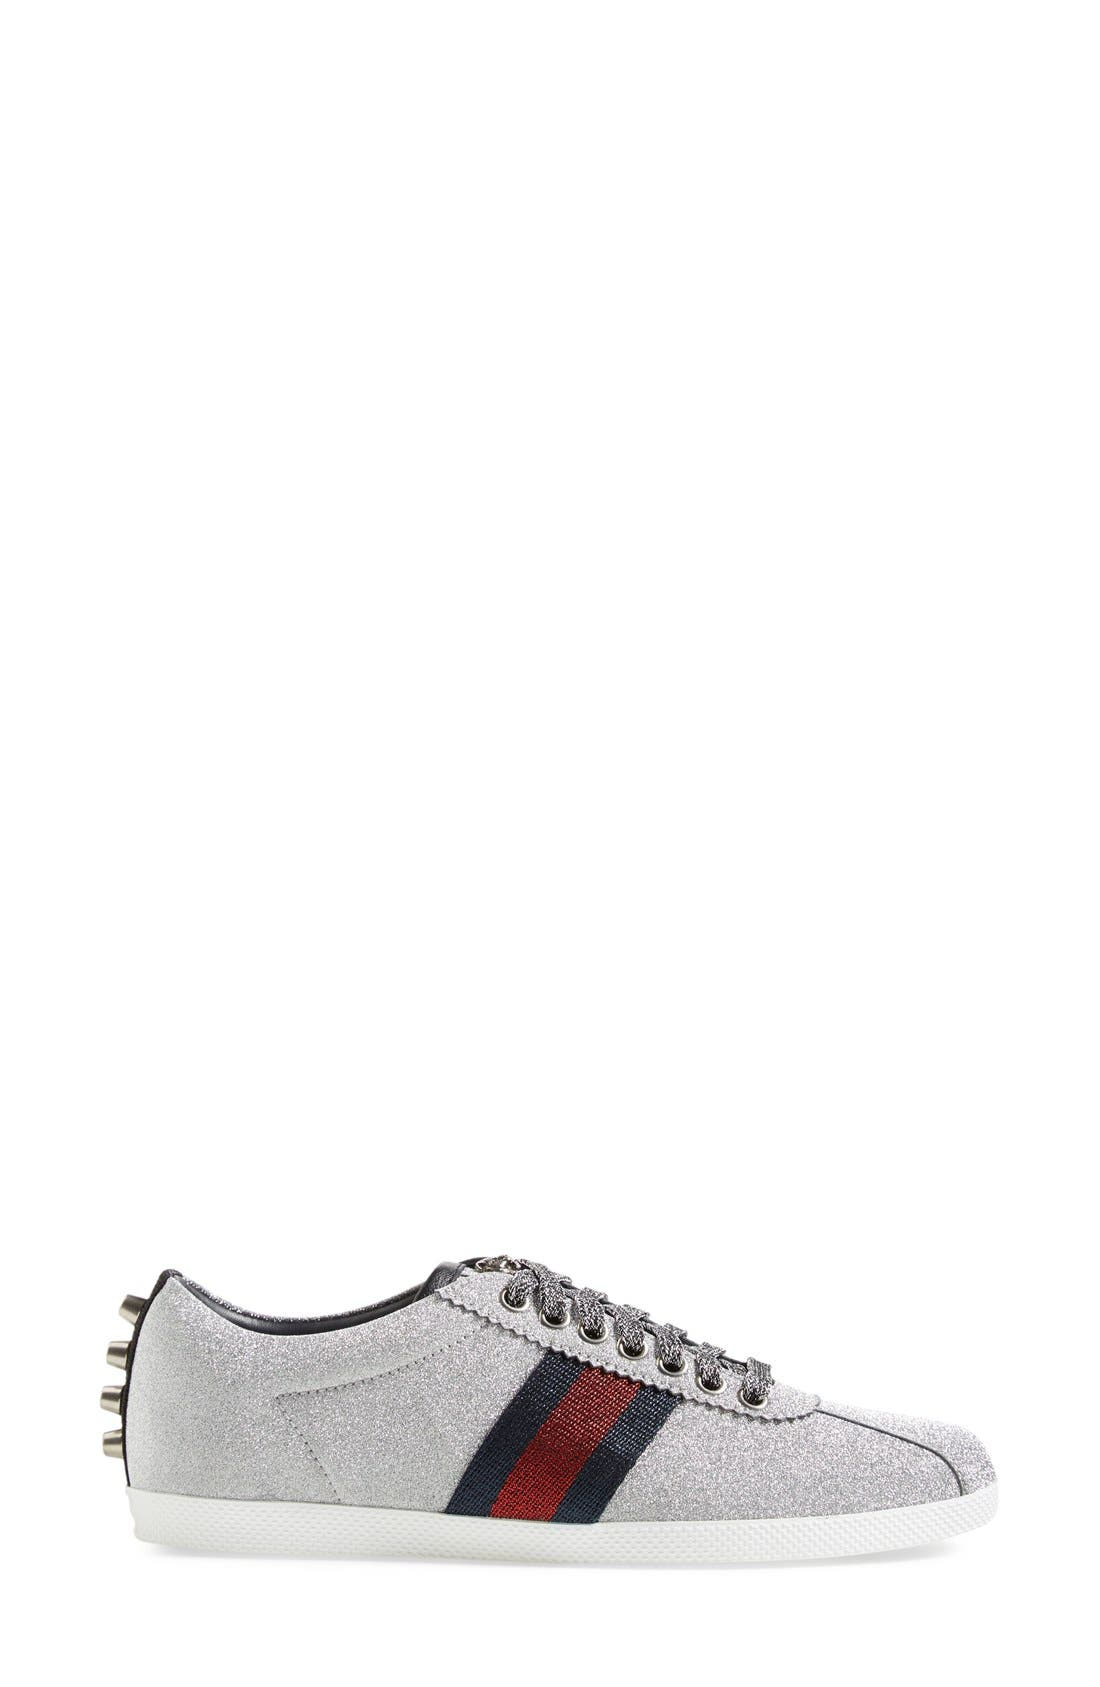 Lace-Up Sneaker,                             Alternate thumbnail 3, color,                             040